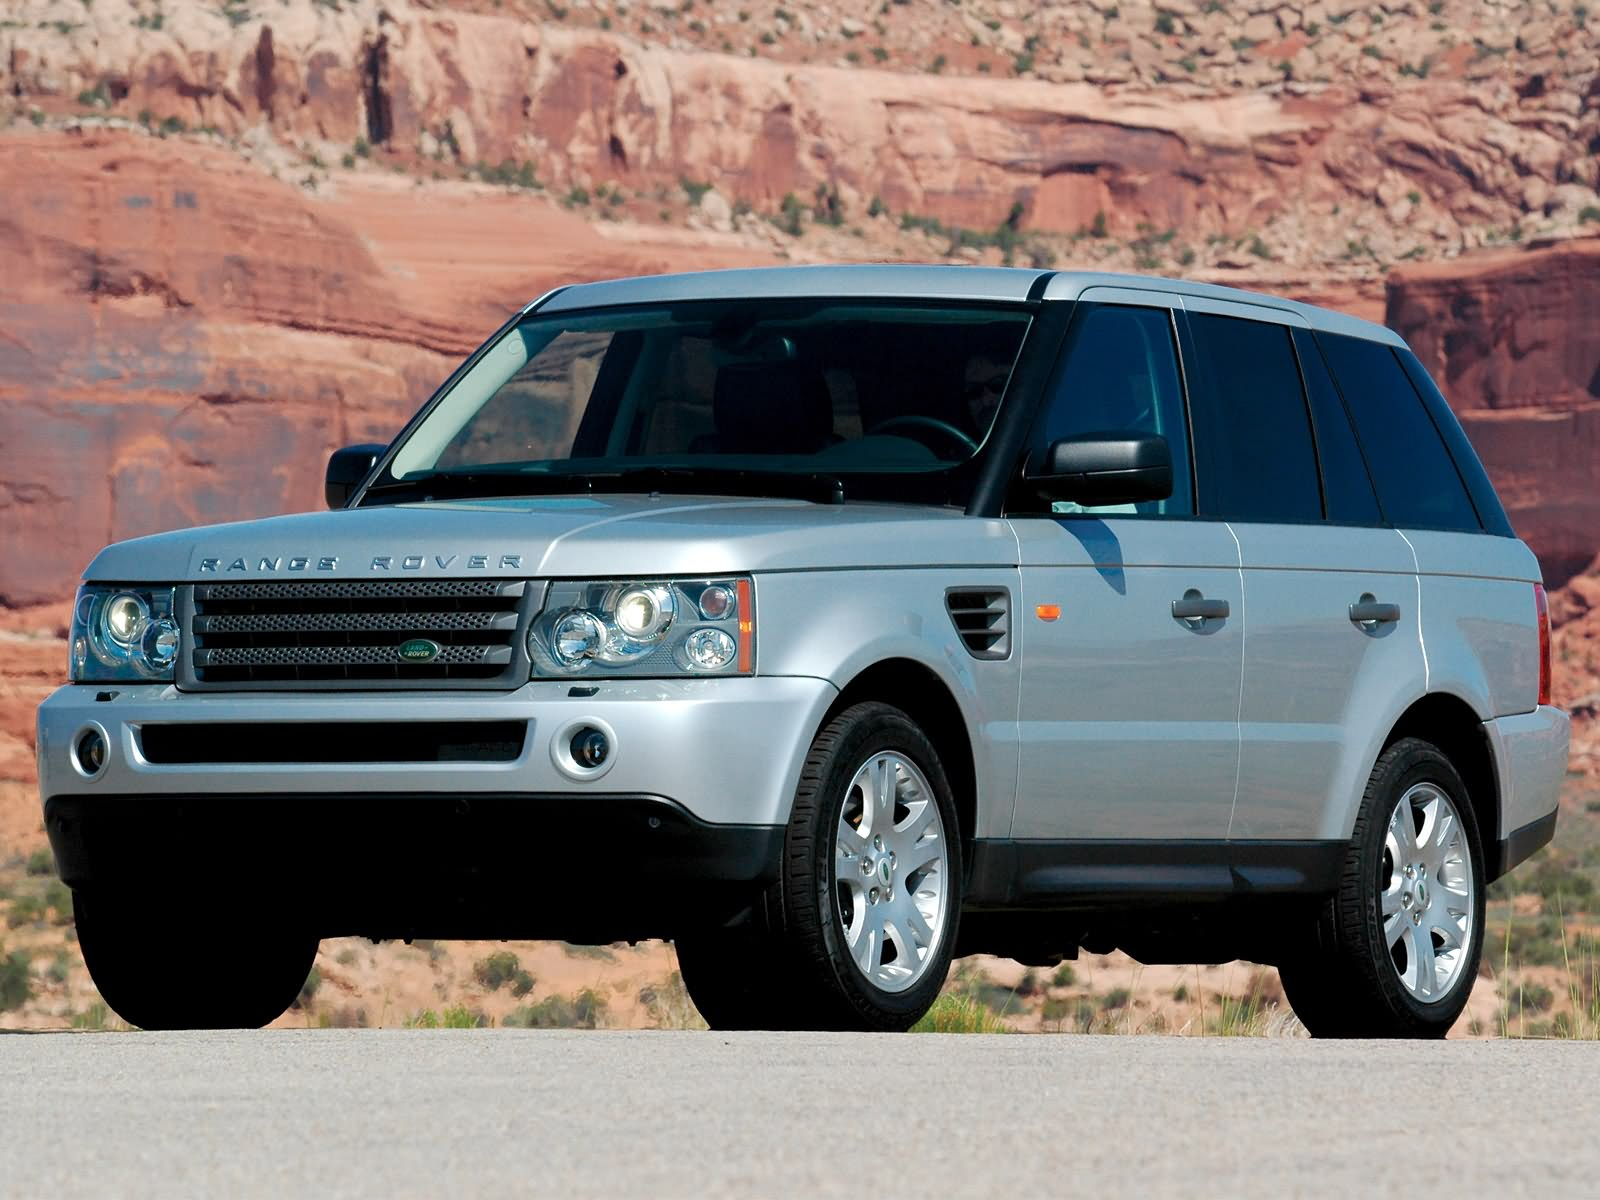 2006 land rover range rover sport pictures information and specs auto. Black Bedroom Furniture Sets. Home Design Ideas